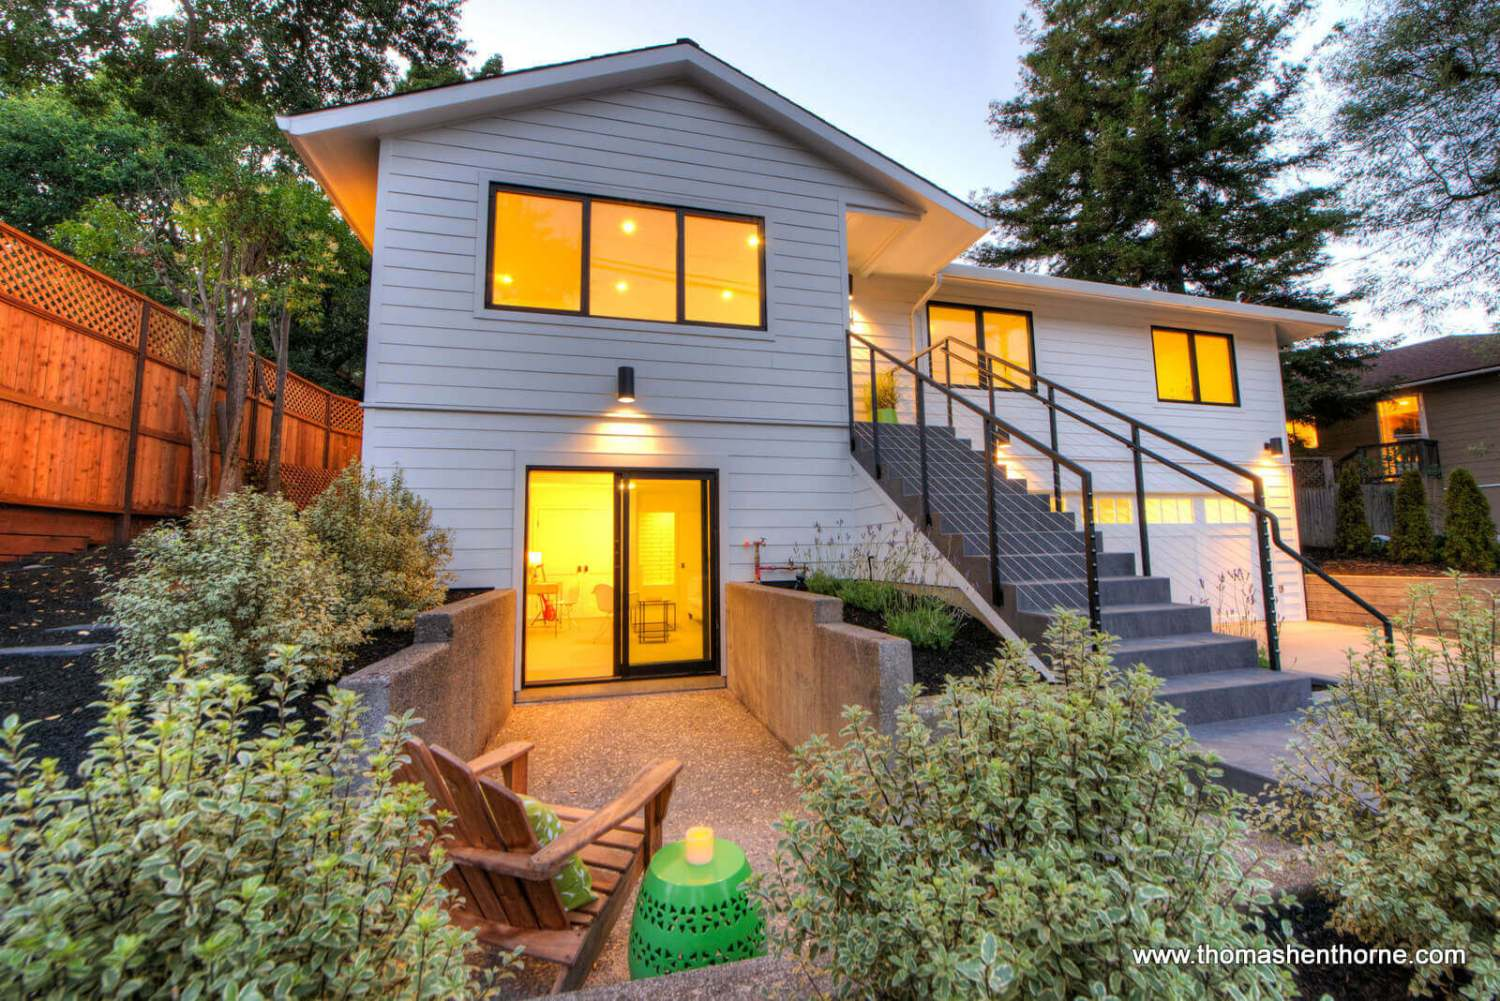 304 Bolinas Avenue in San Anselmo, California front exterior at dusk